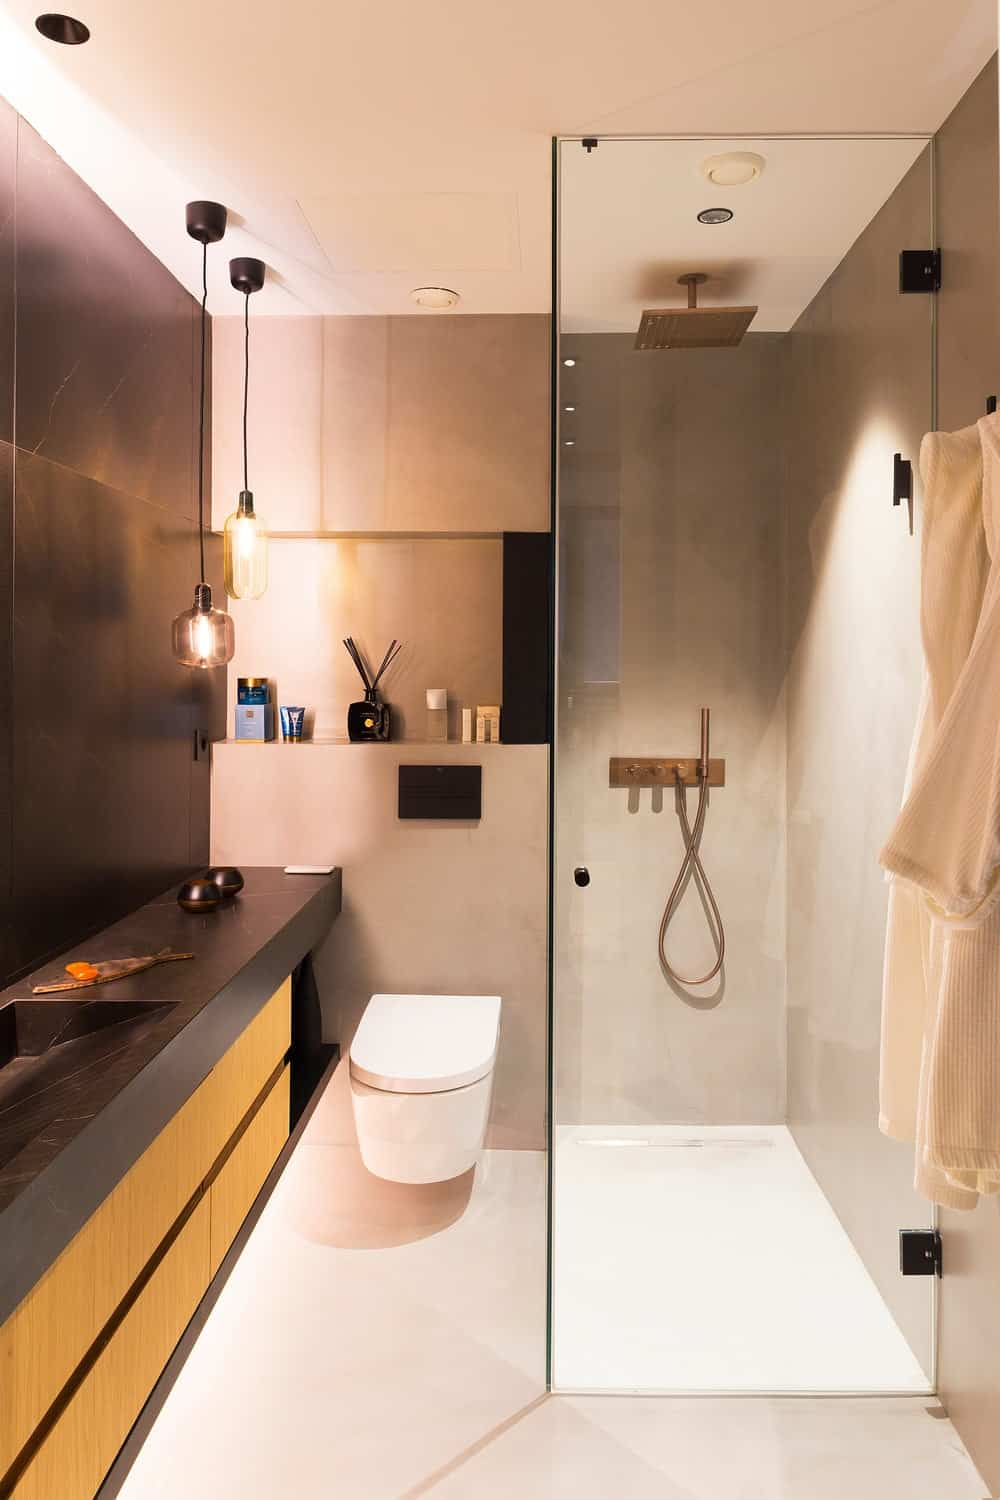 This is a close look at the small bathroom with a dark vanity, a floating toilet and a glass-enclosed shower area.